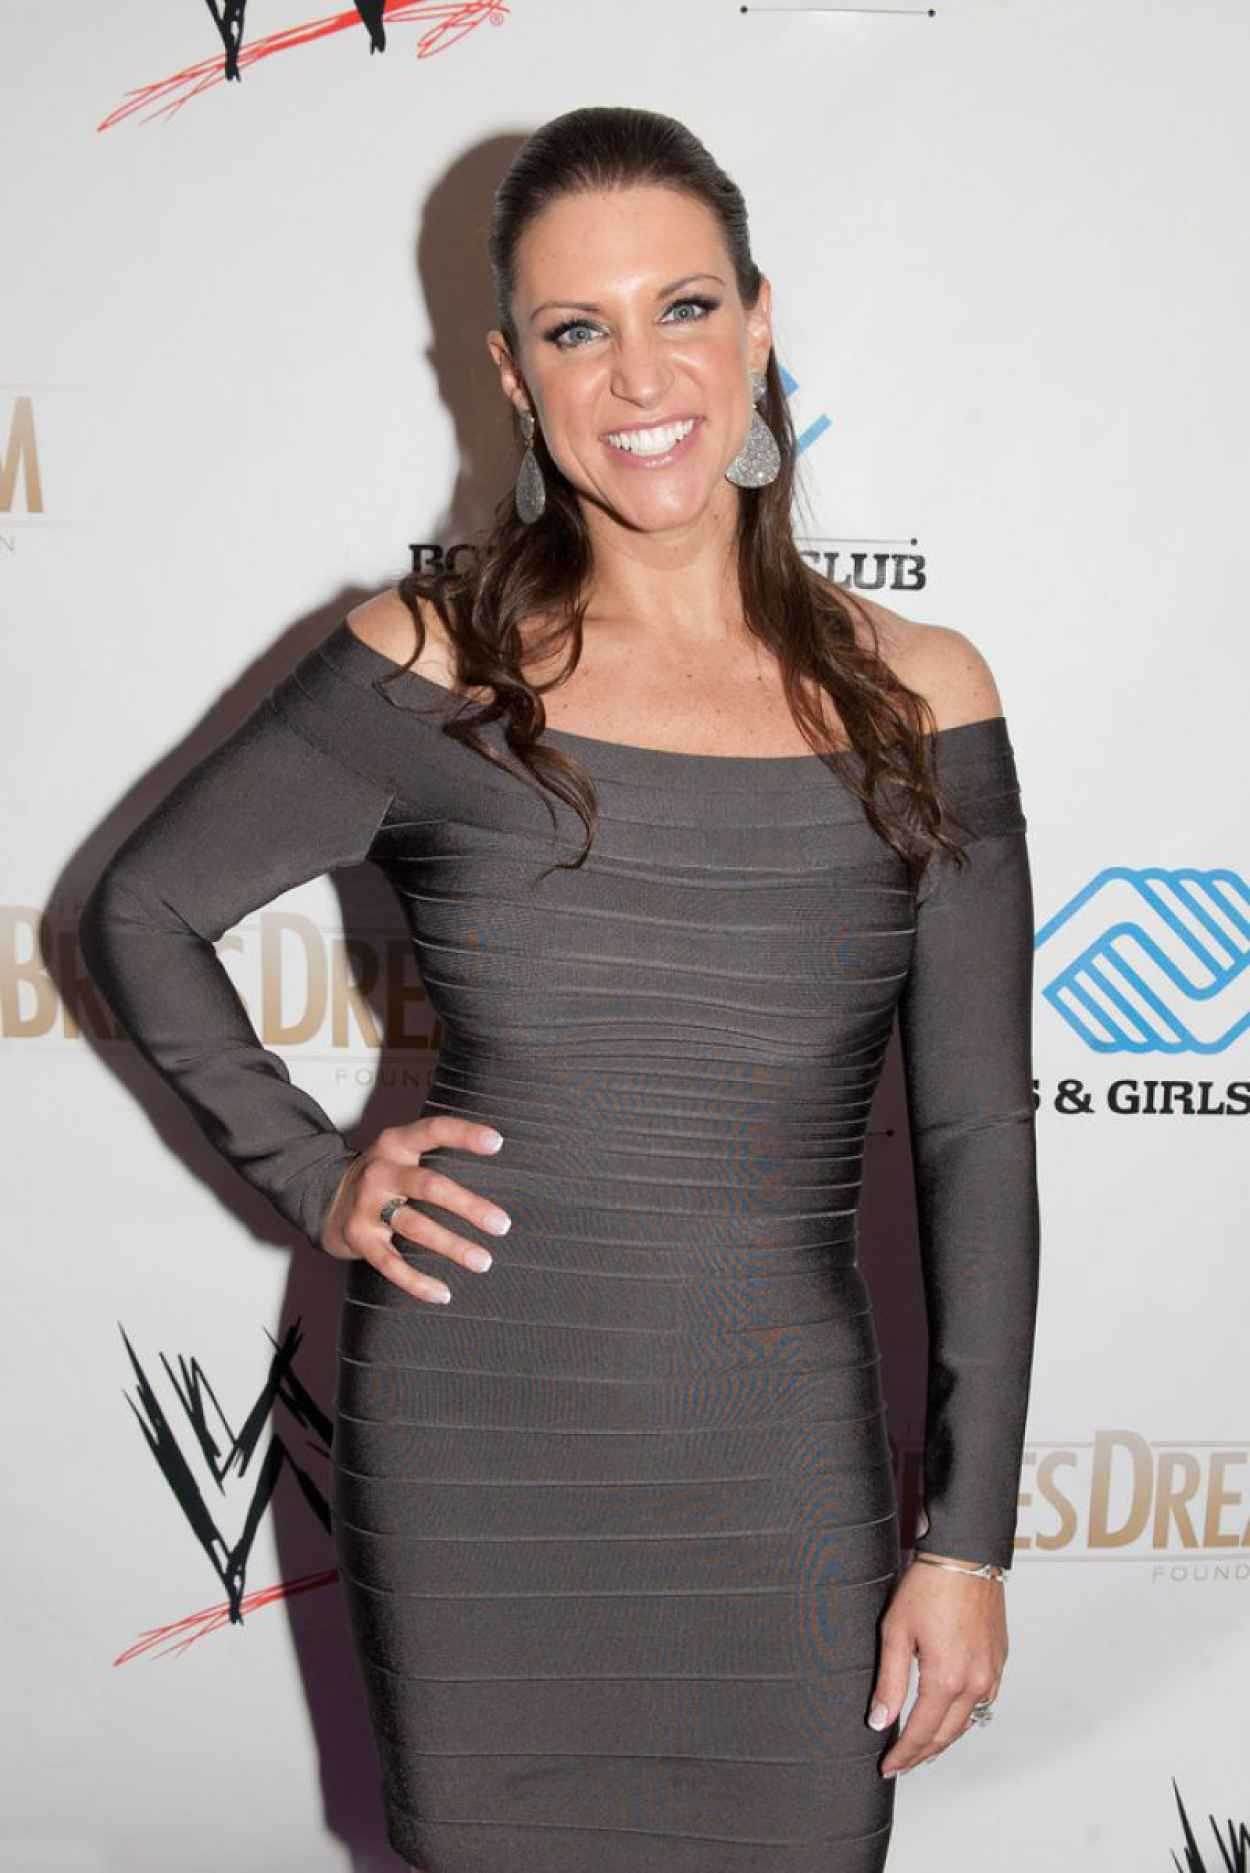 Stephanie McMahon Leggy in a Tight Dress - WWE Superstars for Kids Event - April 2015-4